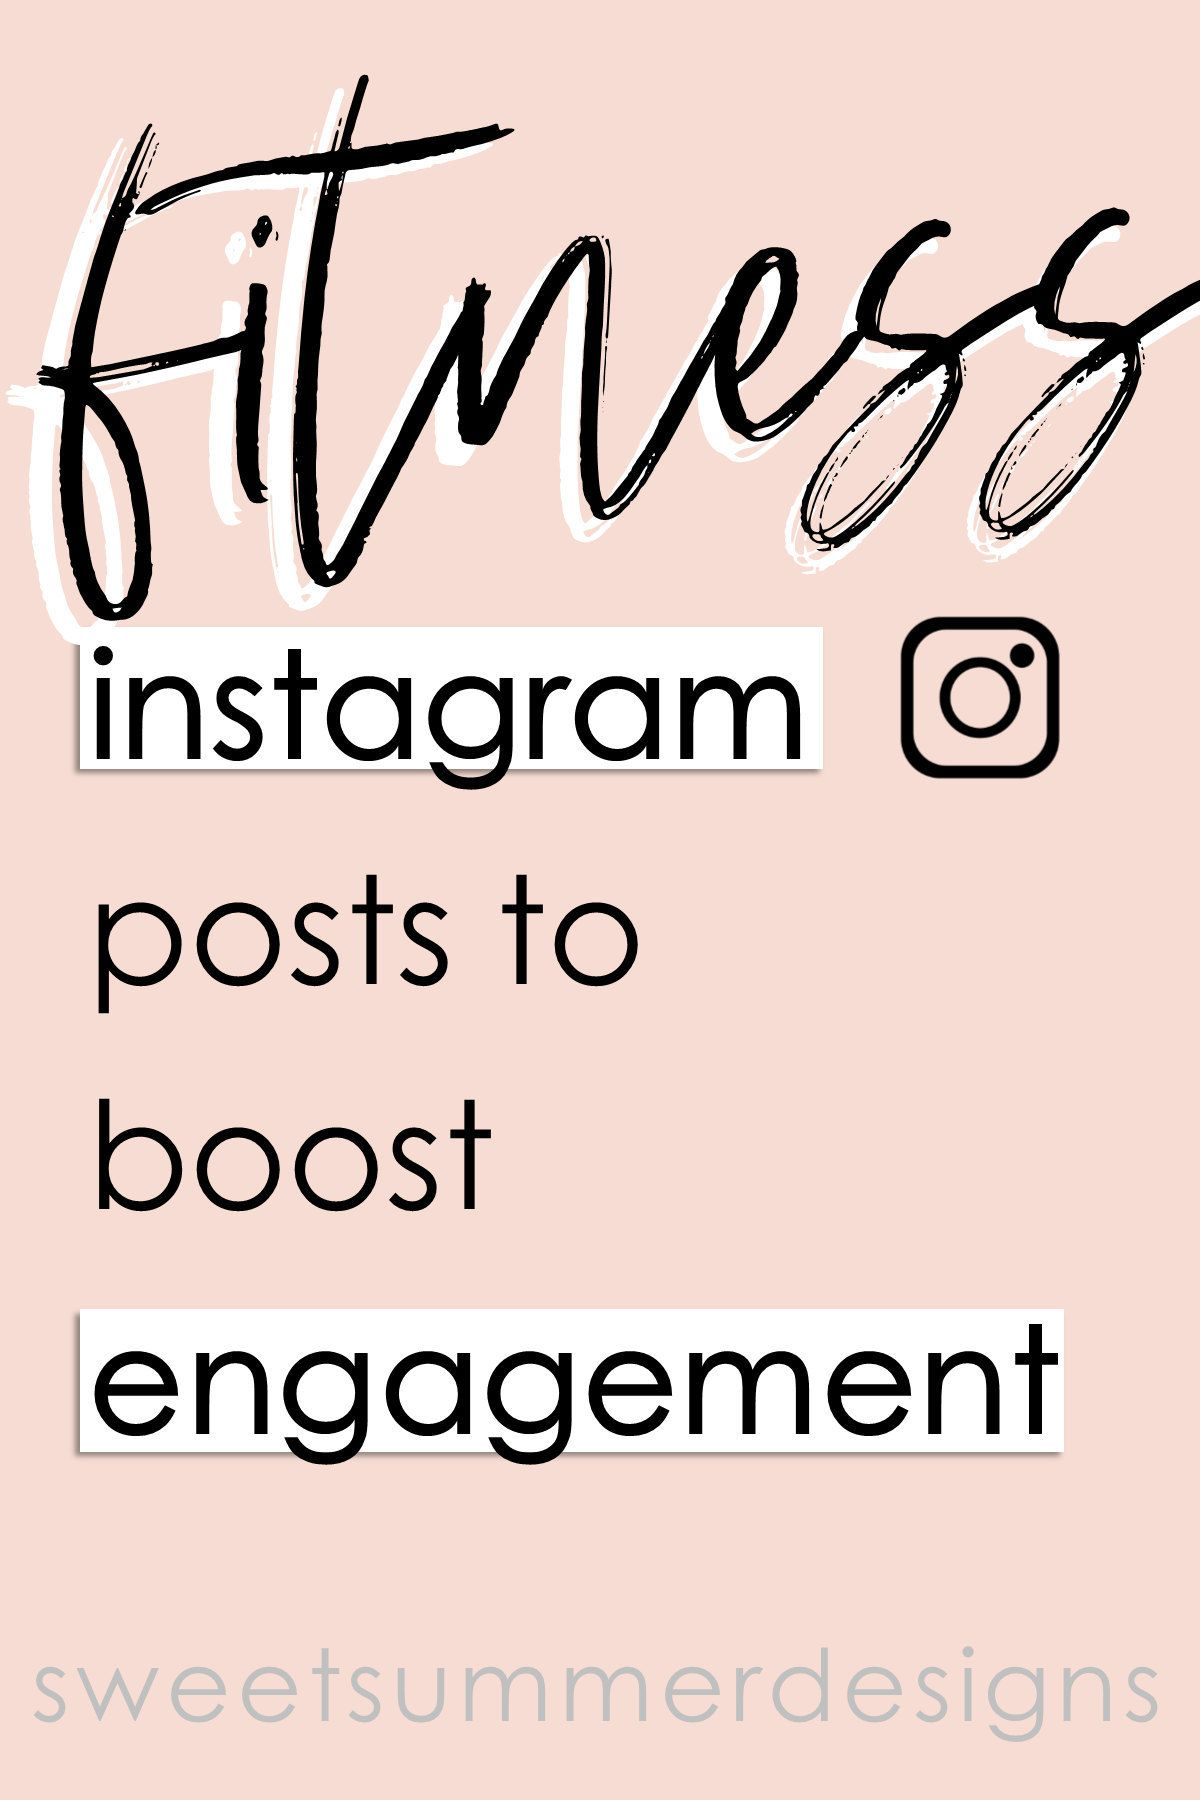 65 Fitness Instagram Posts Workout Quotes Social Media Etsy Fitness Instagram Lifestyle Blog Topics Coach Instagram